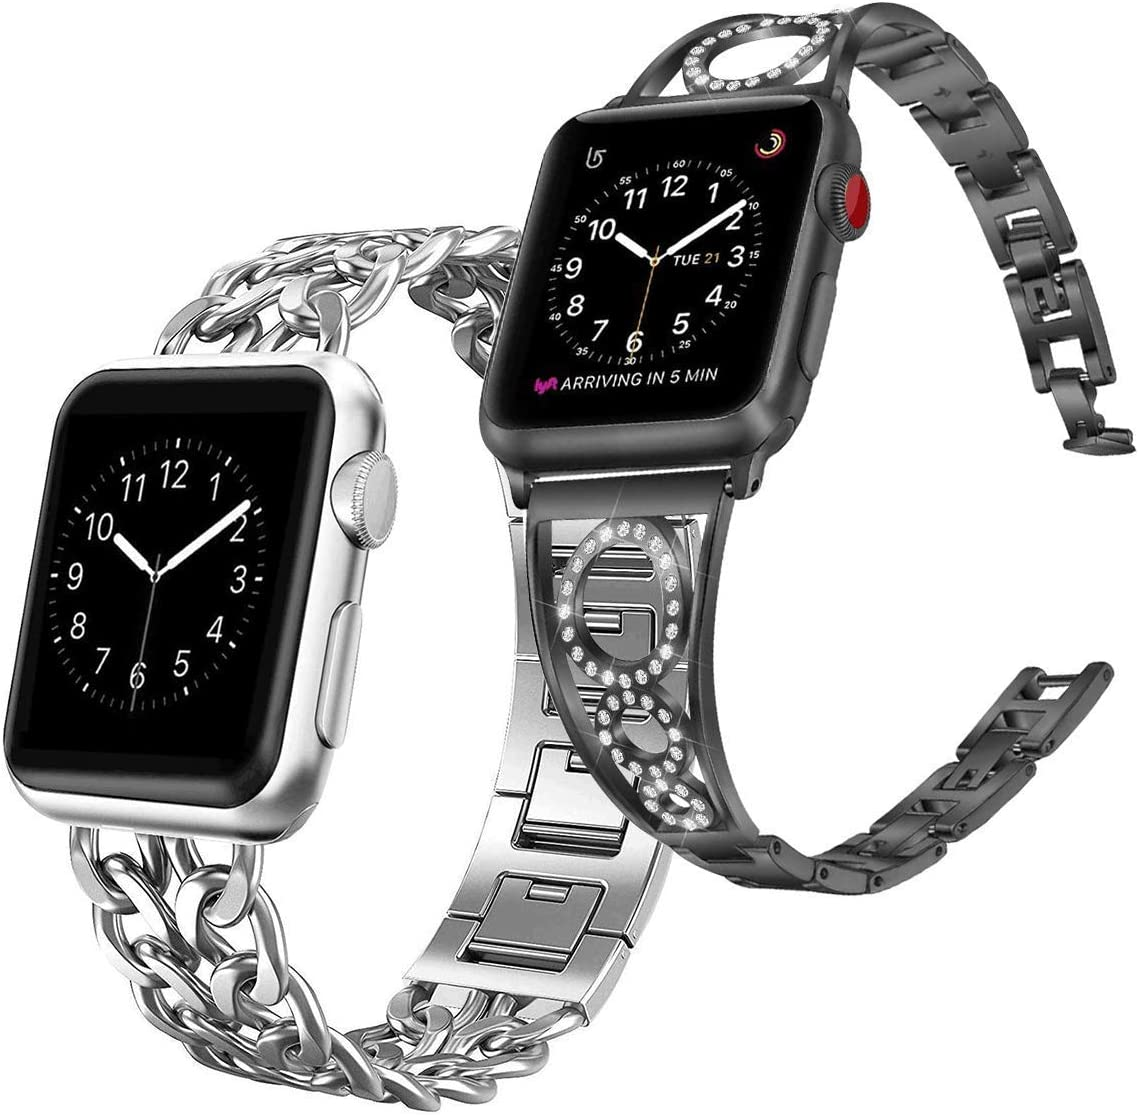 AmzAokay Replacement bands Compatible for Apple Watch 38mm 42mm Cowboy Chain Band Silver & Compatible Apple Watch Steel Band 38mm